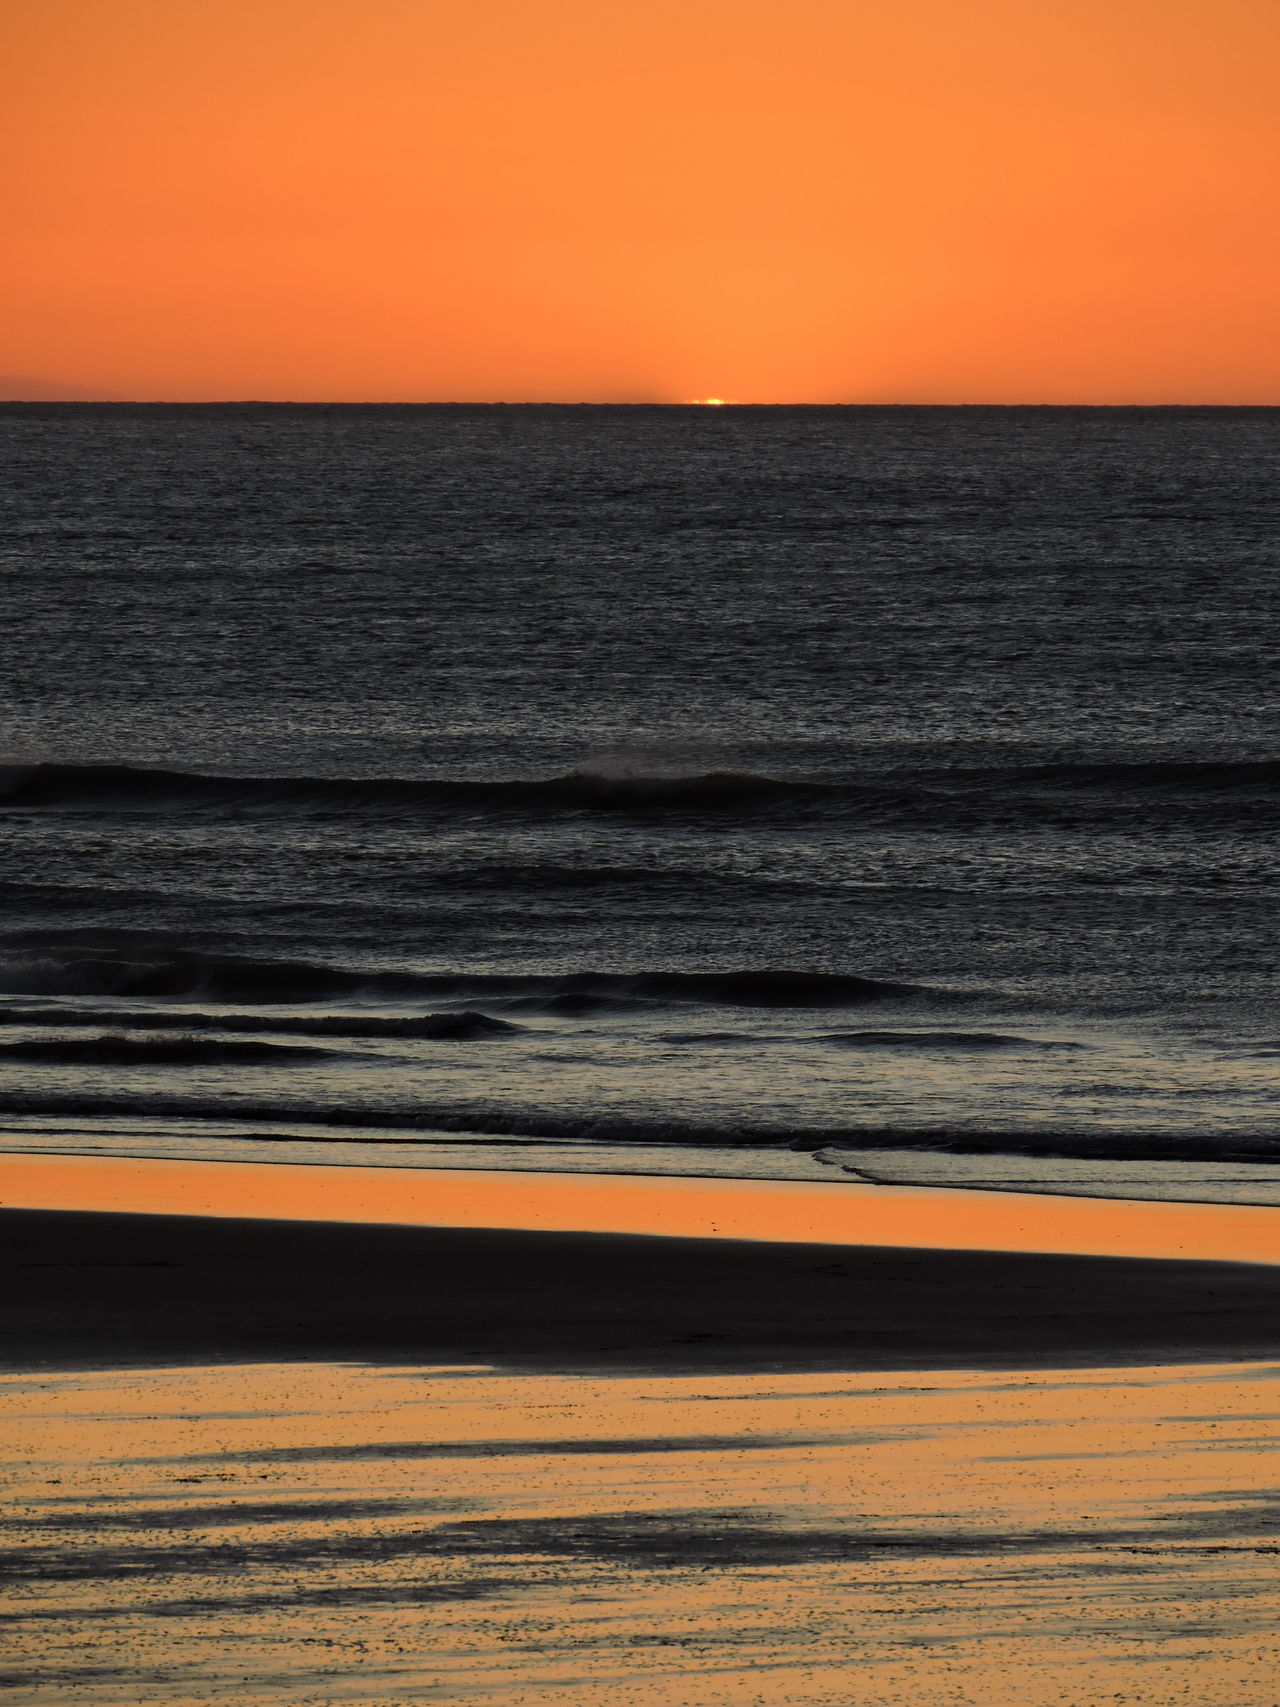 Beach Beauty In Nature Distant Horizon Over Water Last Seconds Of Sunset Of 2015 Ocean Sea Seascape Shore Water Wave